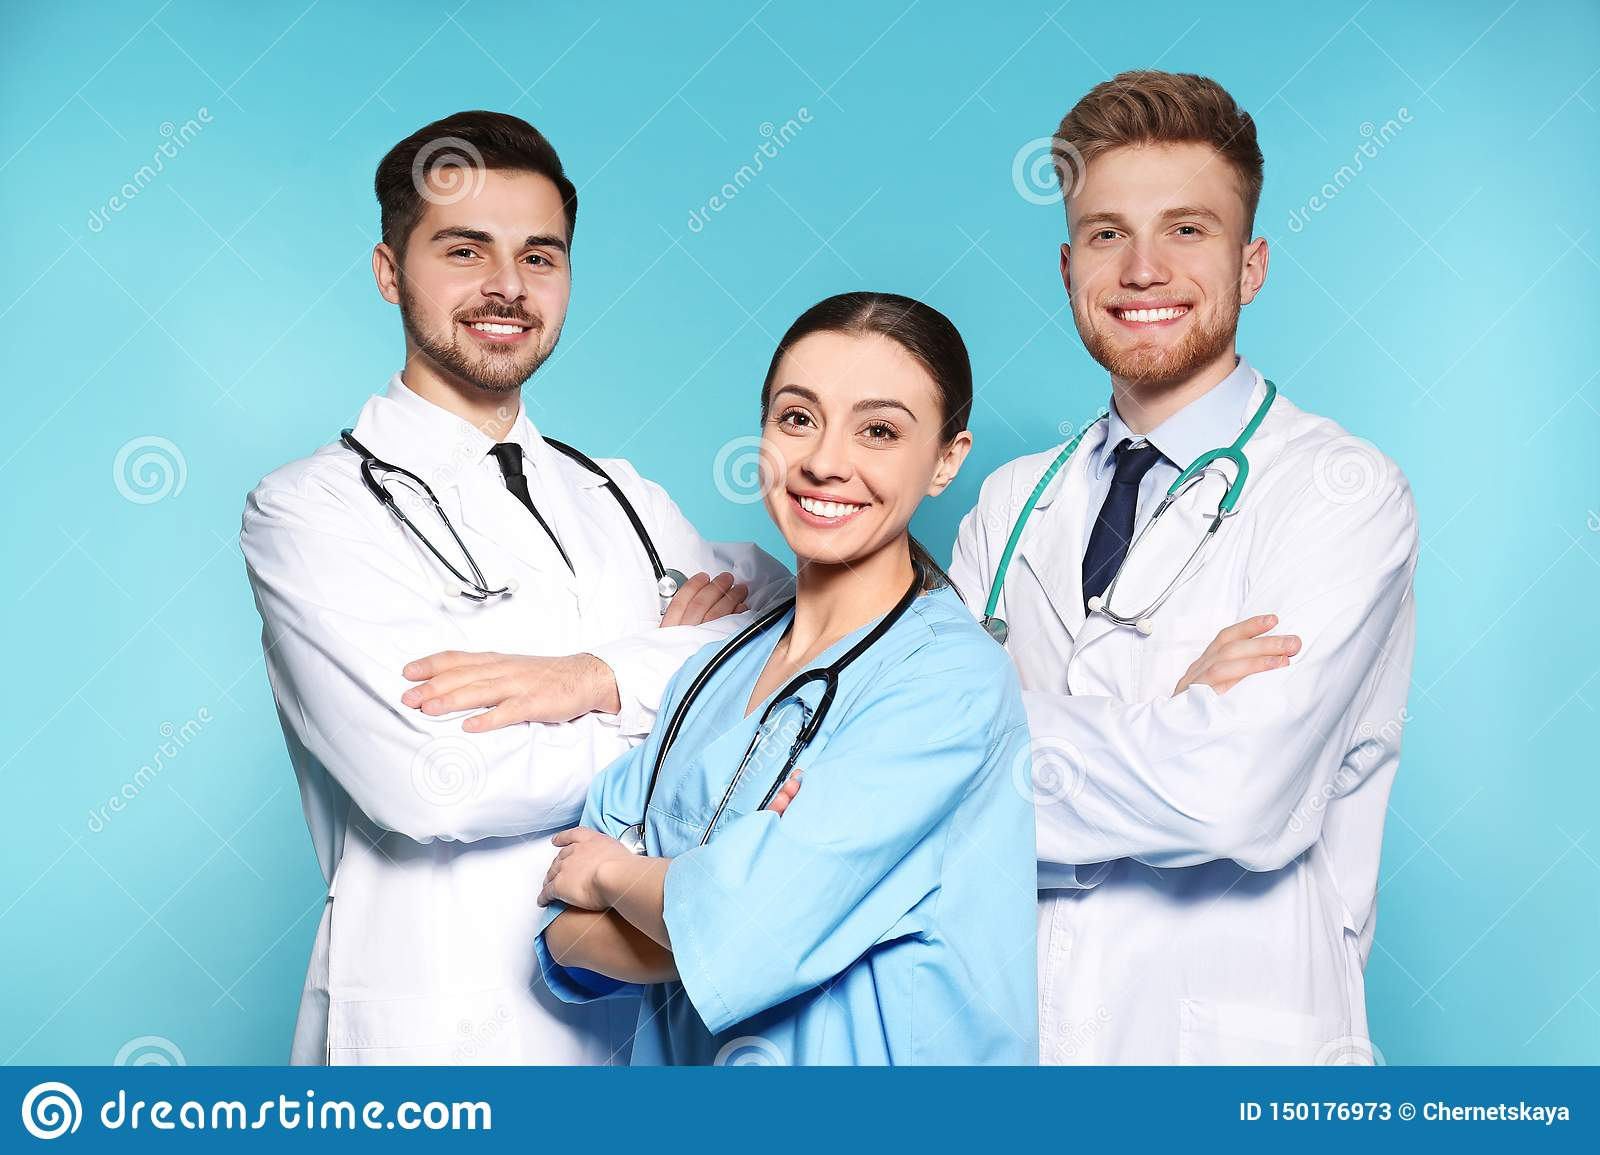 Group of medical doctors on color background